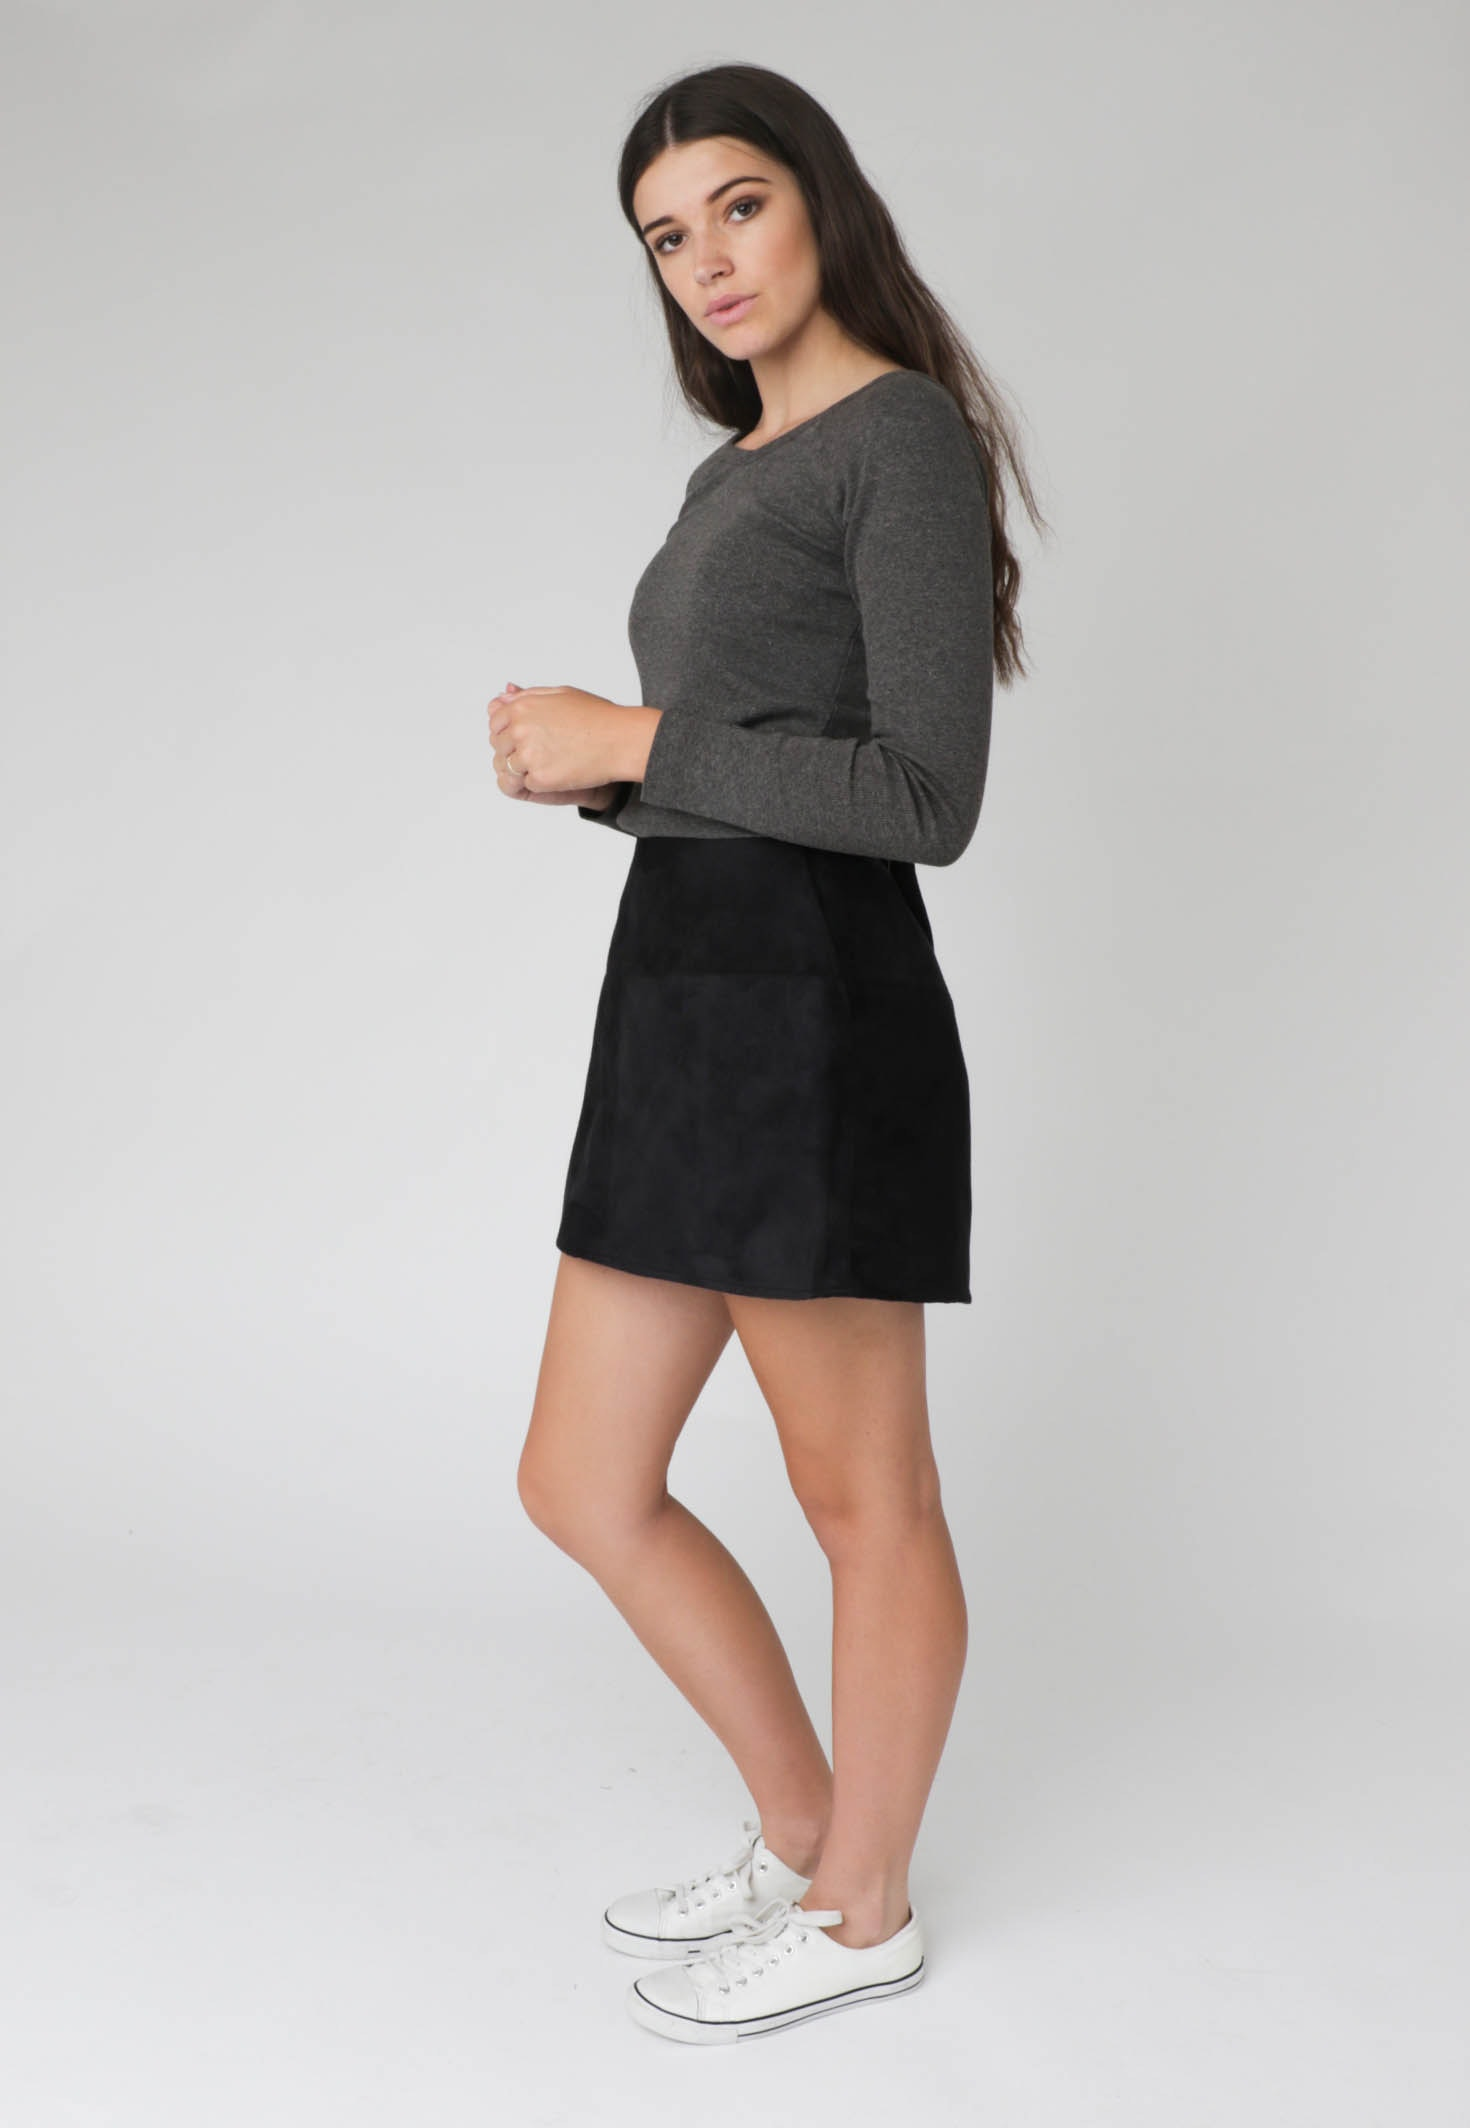 All About Eve - Struck Gold Suede Skirt - Black